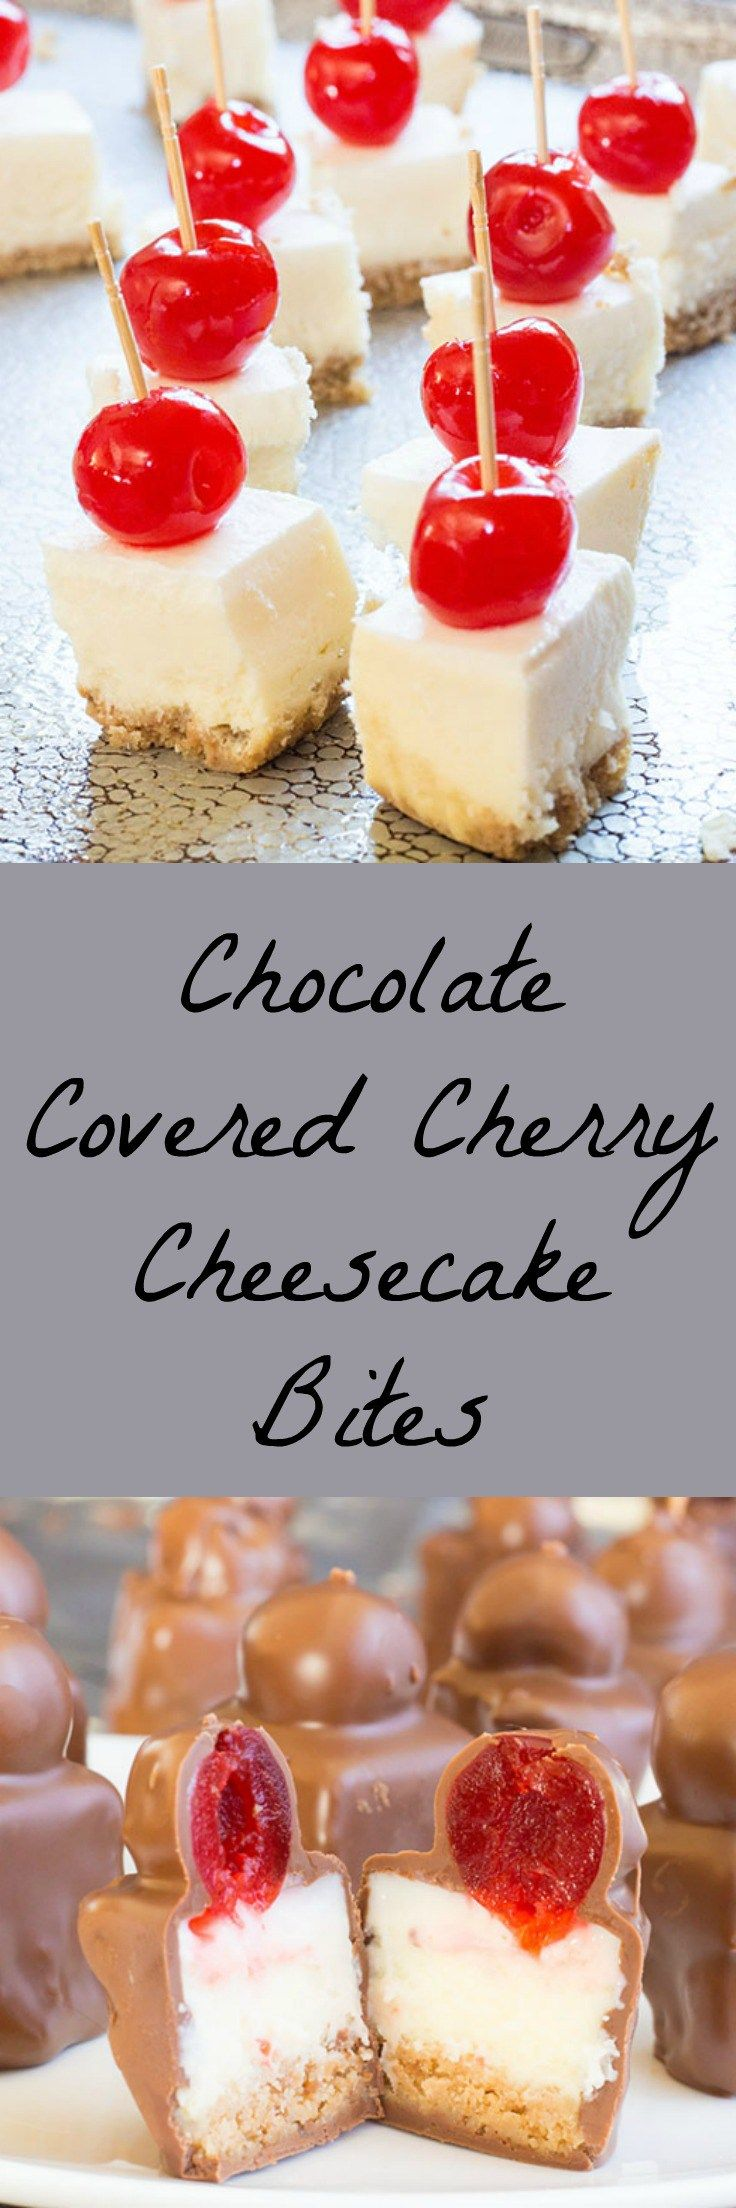 Chocolate covered cherries and cheesecake rolled into one bite sized treat.